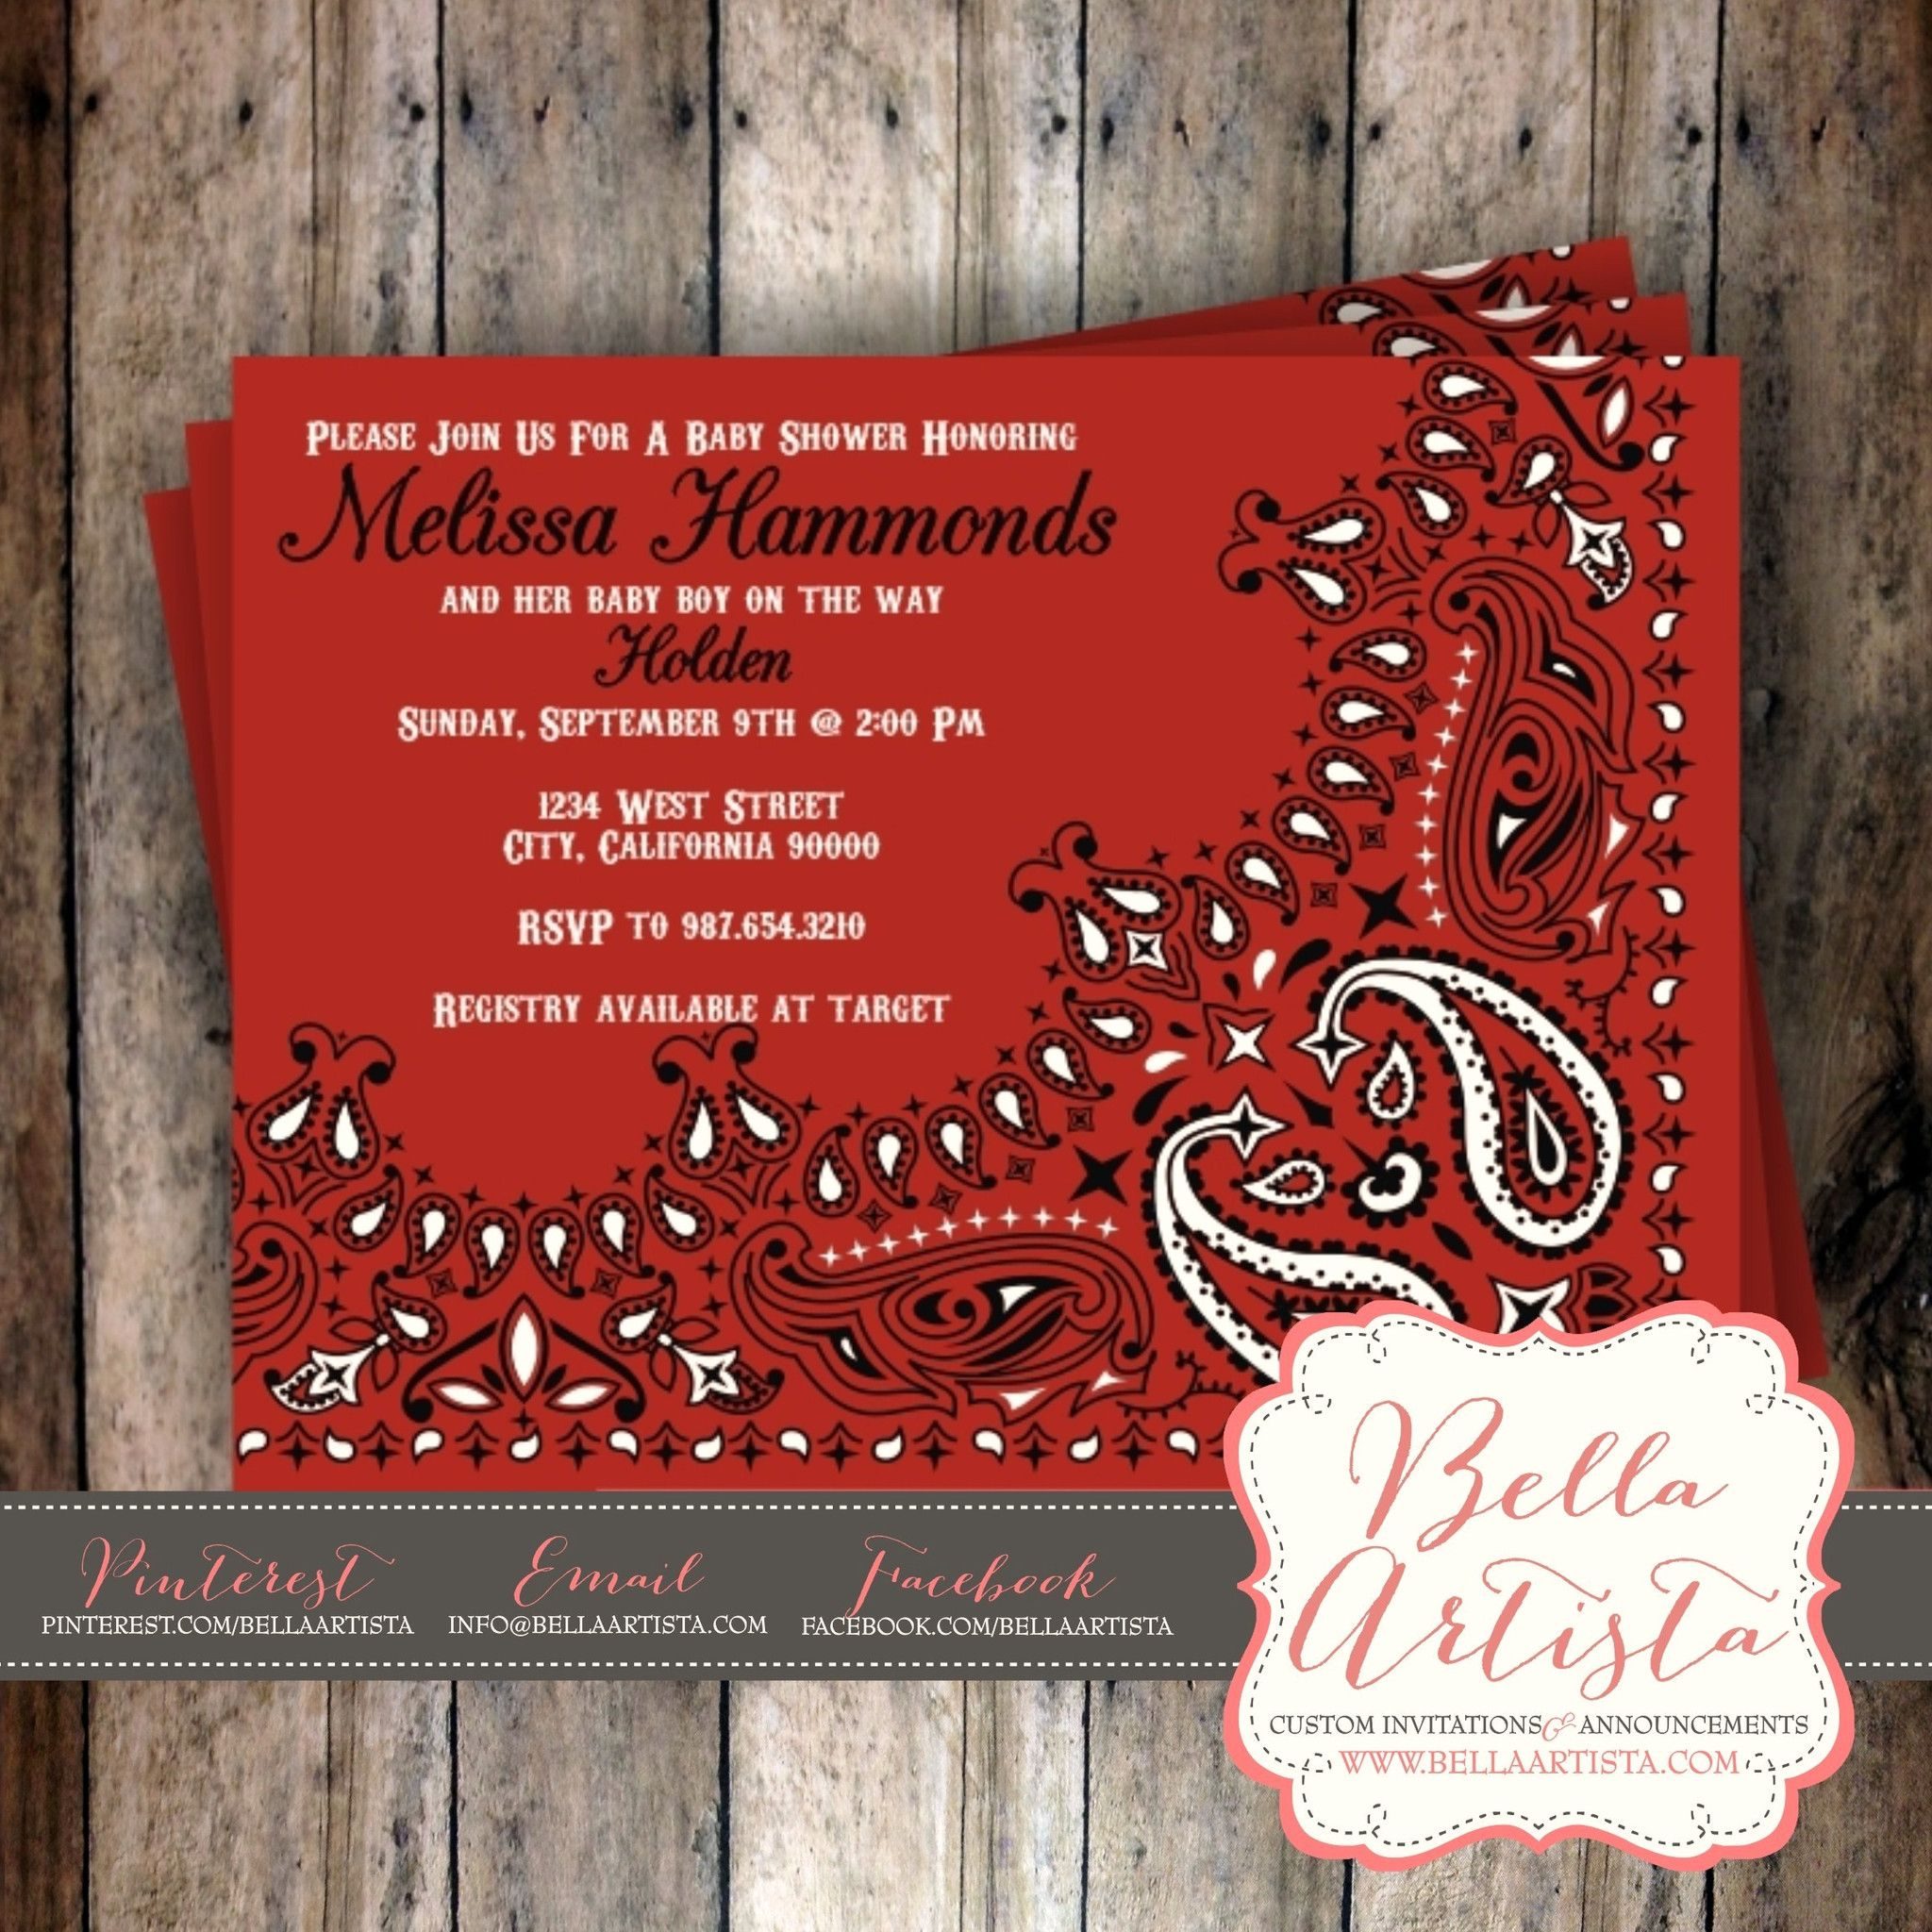 Western Bandana BBQ Invitation for Baby Shower, Birthday Party or ...